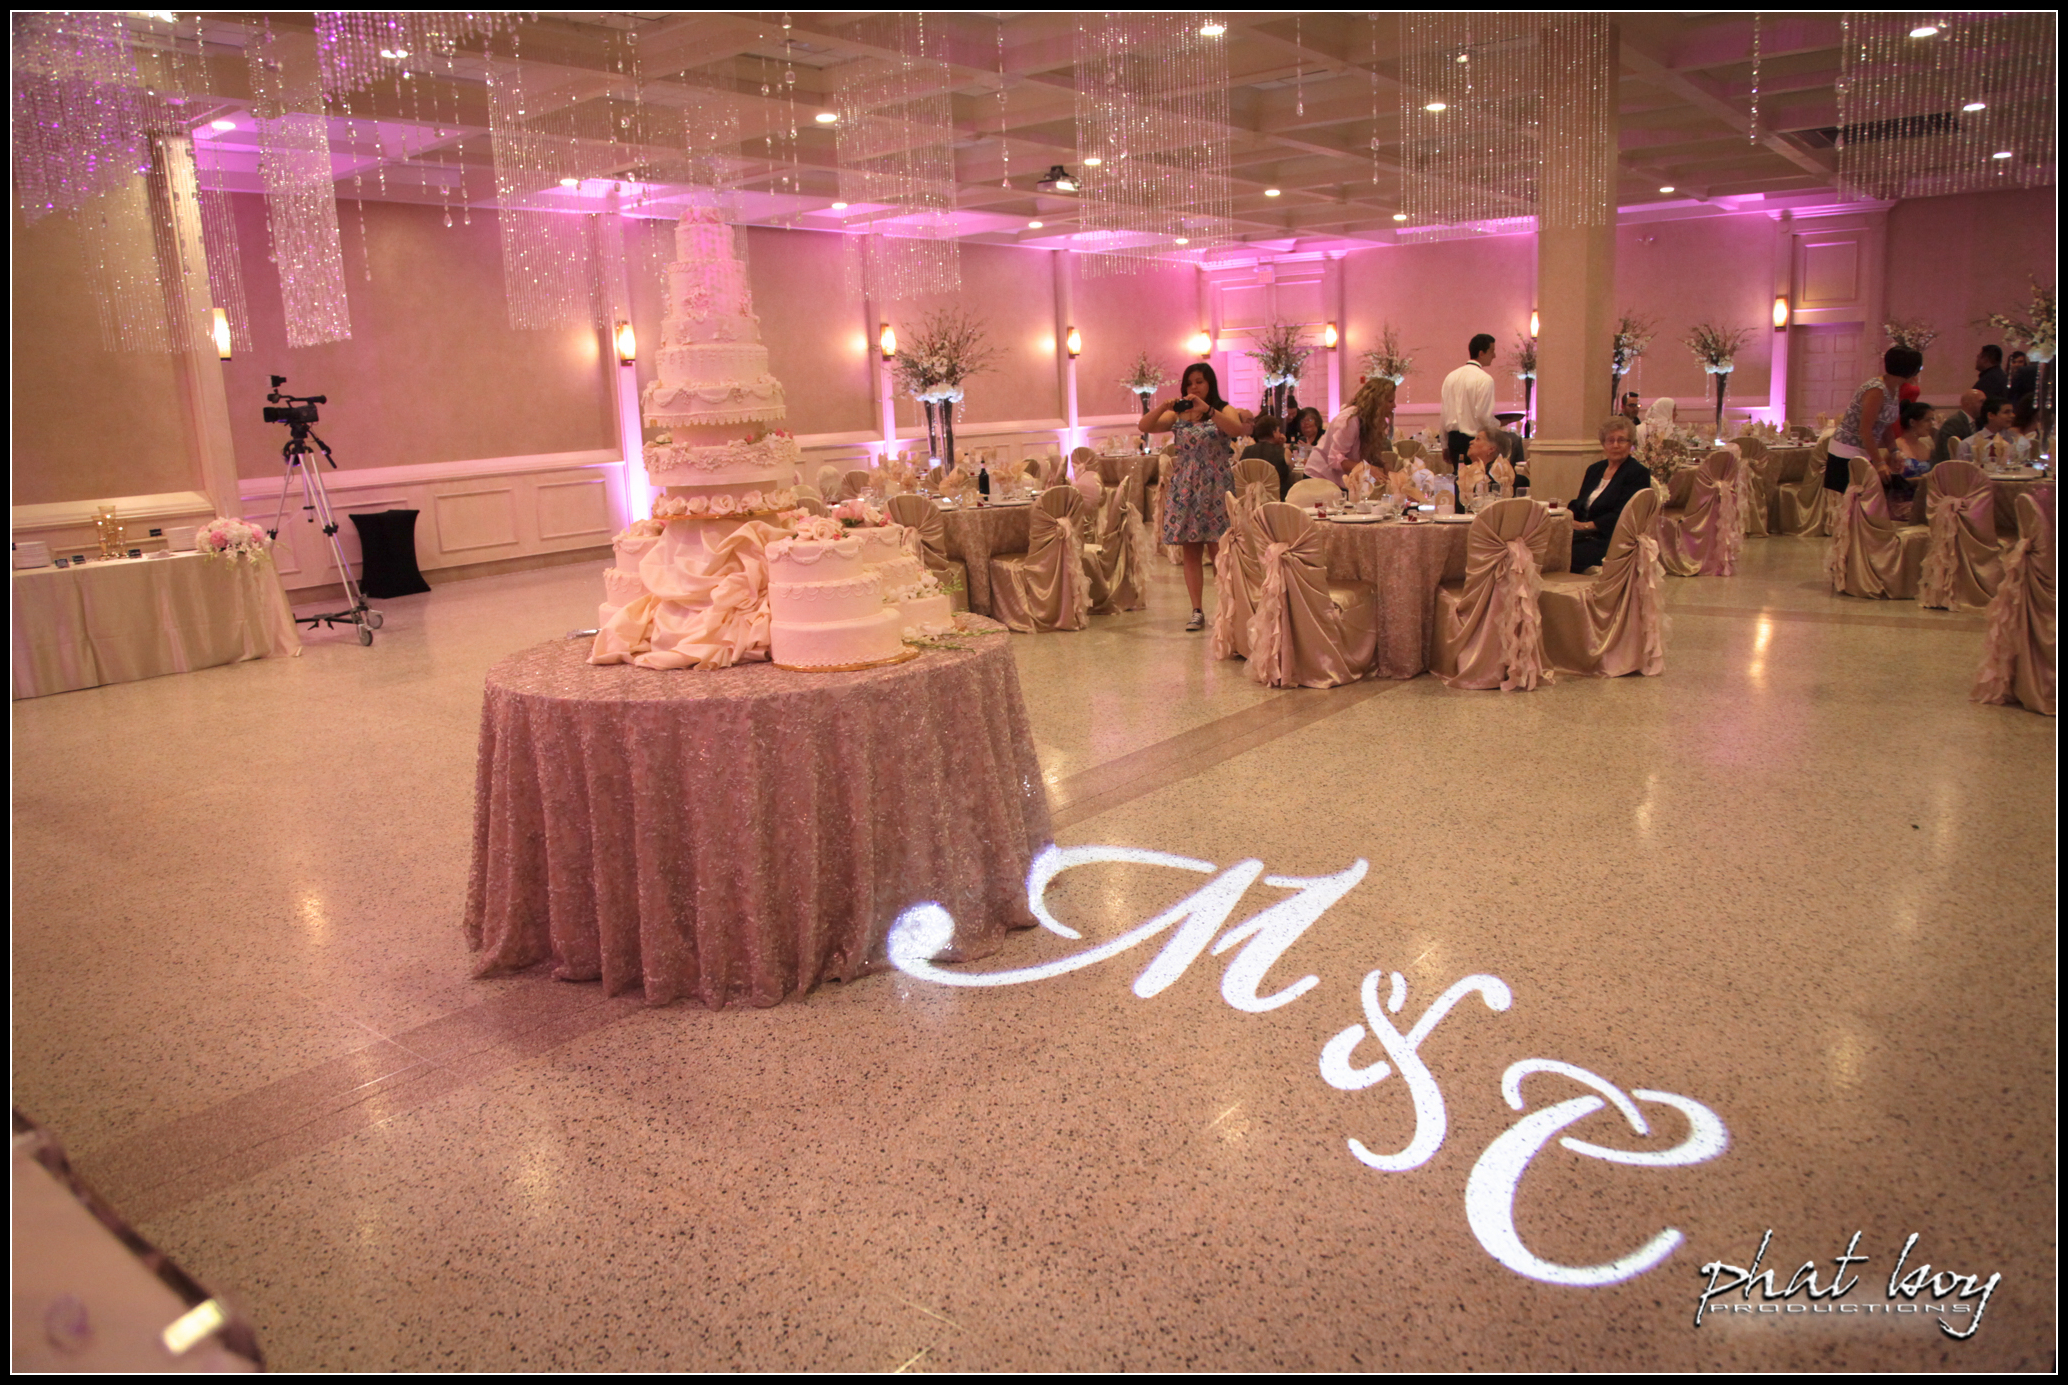 Melissa & Christopher - DJ & Specialty Lighting WEB-3-2.jpg